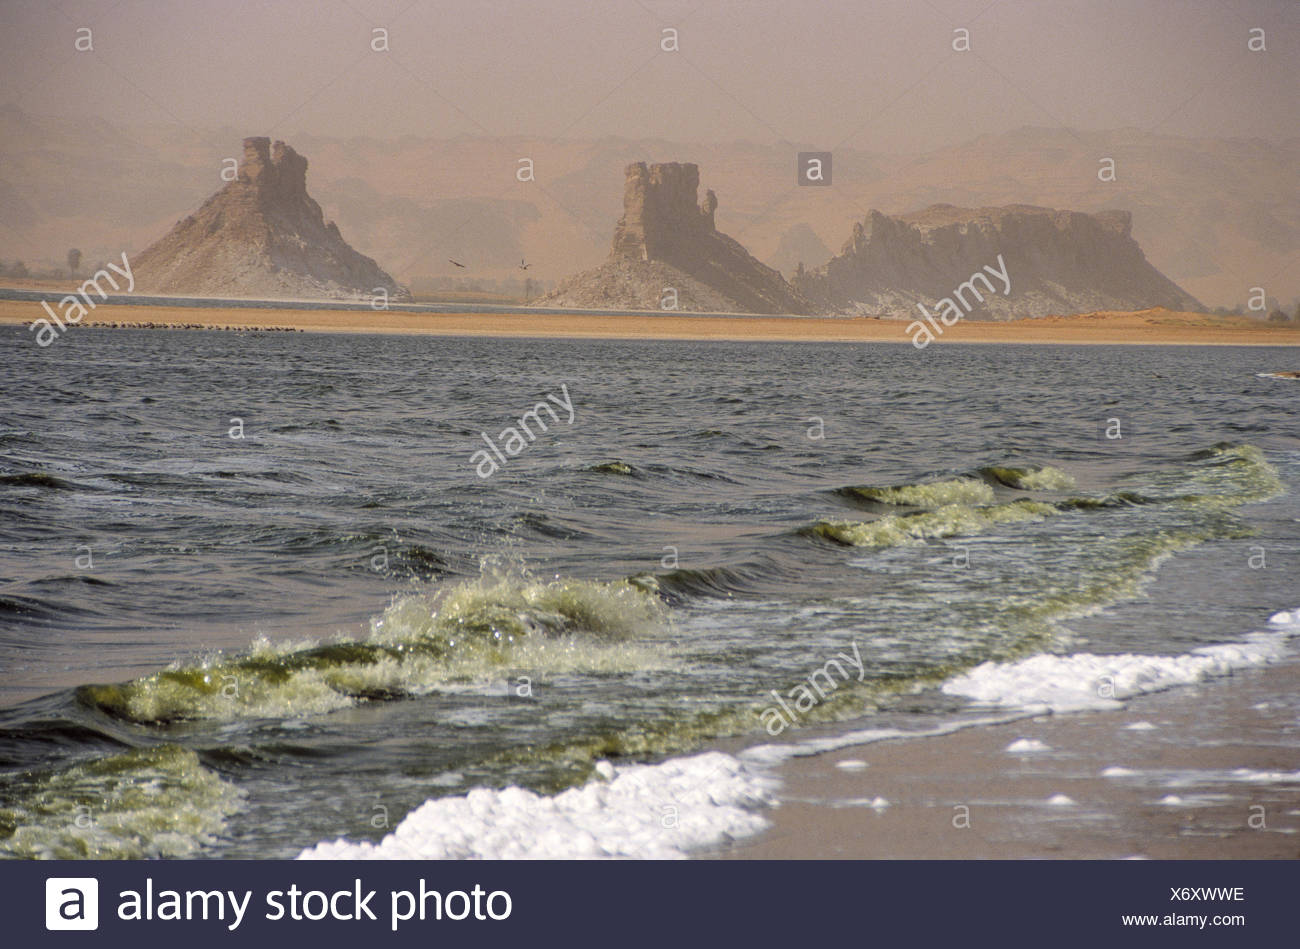 Chad, mesa country Ennedi, salt lake Ounianga Serir, Central, Africa, landlocked country, Sahara, Sahara waters, lake, 381 m sea level, beach, surf, mountains, mesas, bile formations, scenery, nature, foggy, haze - Stock Image